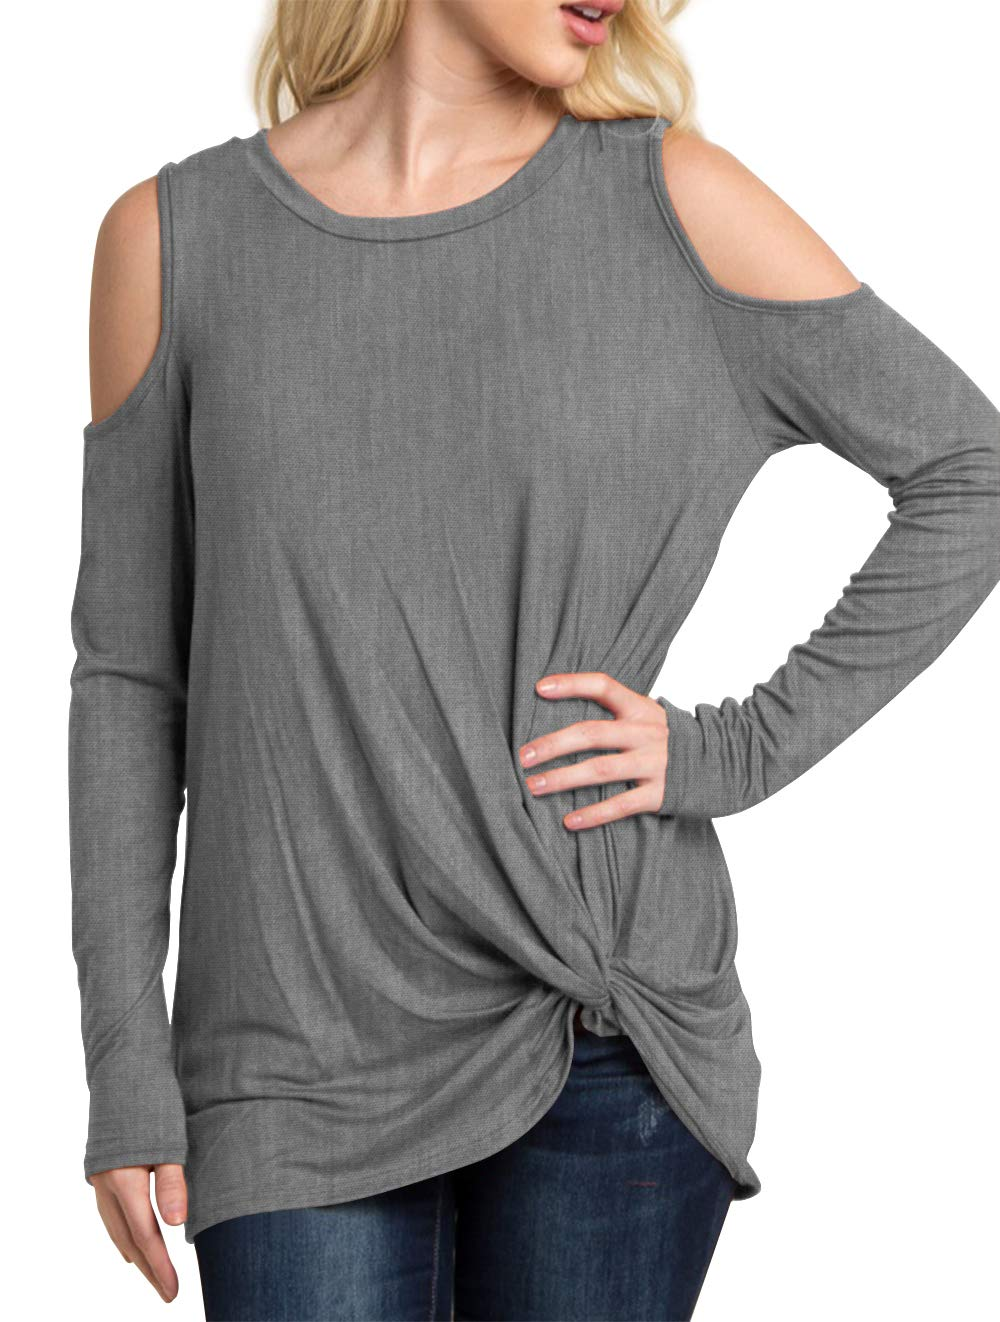 Eanklosco Women's Long Sleeve Cold Shoulder Cut Out T Shirts Casual Knot Front Tunic Tops (Gray, XL)